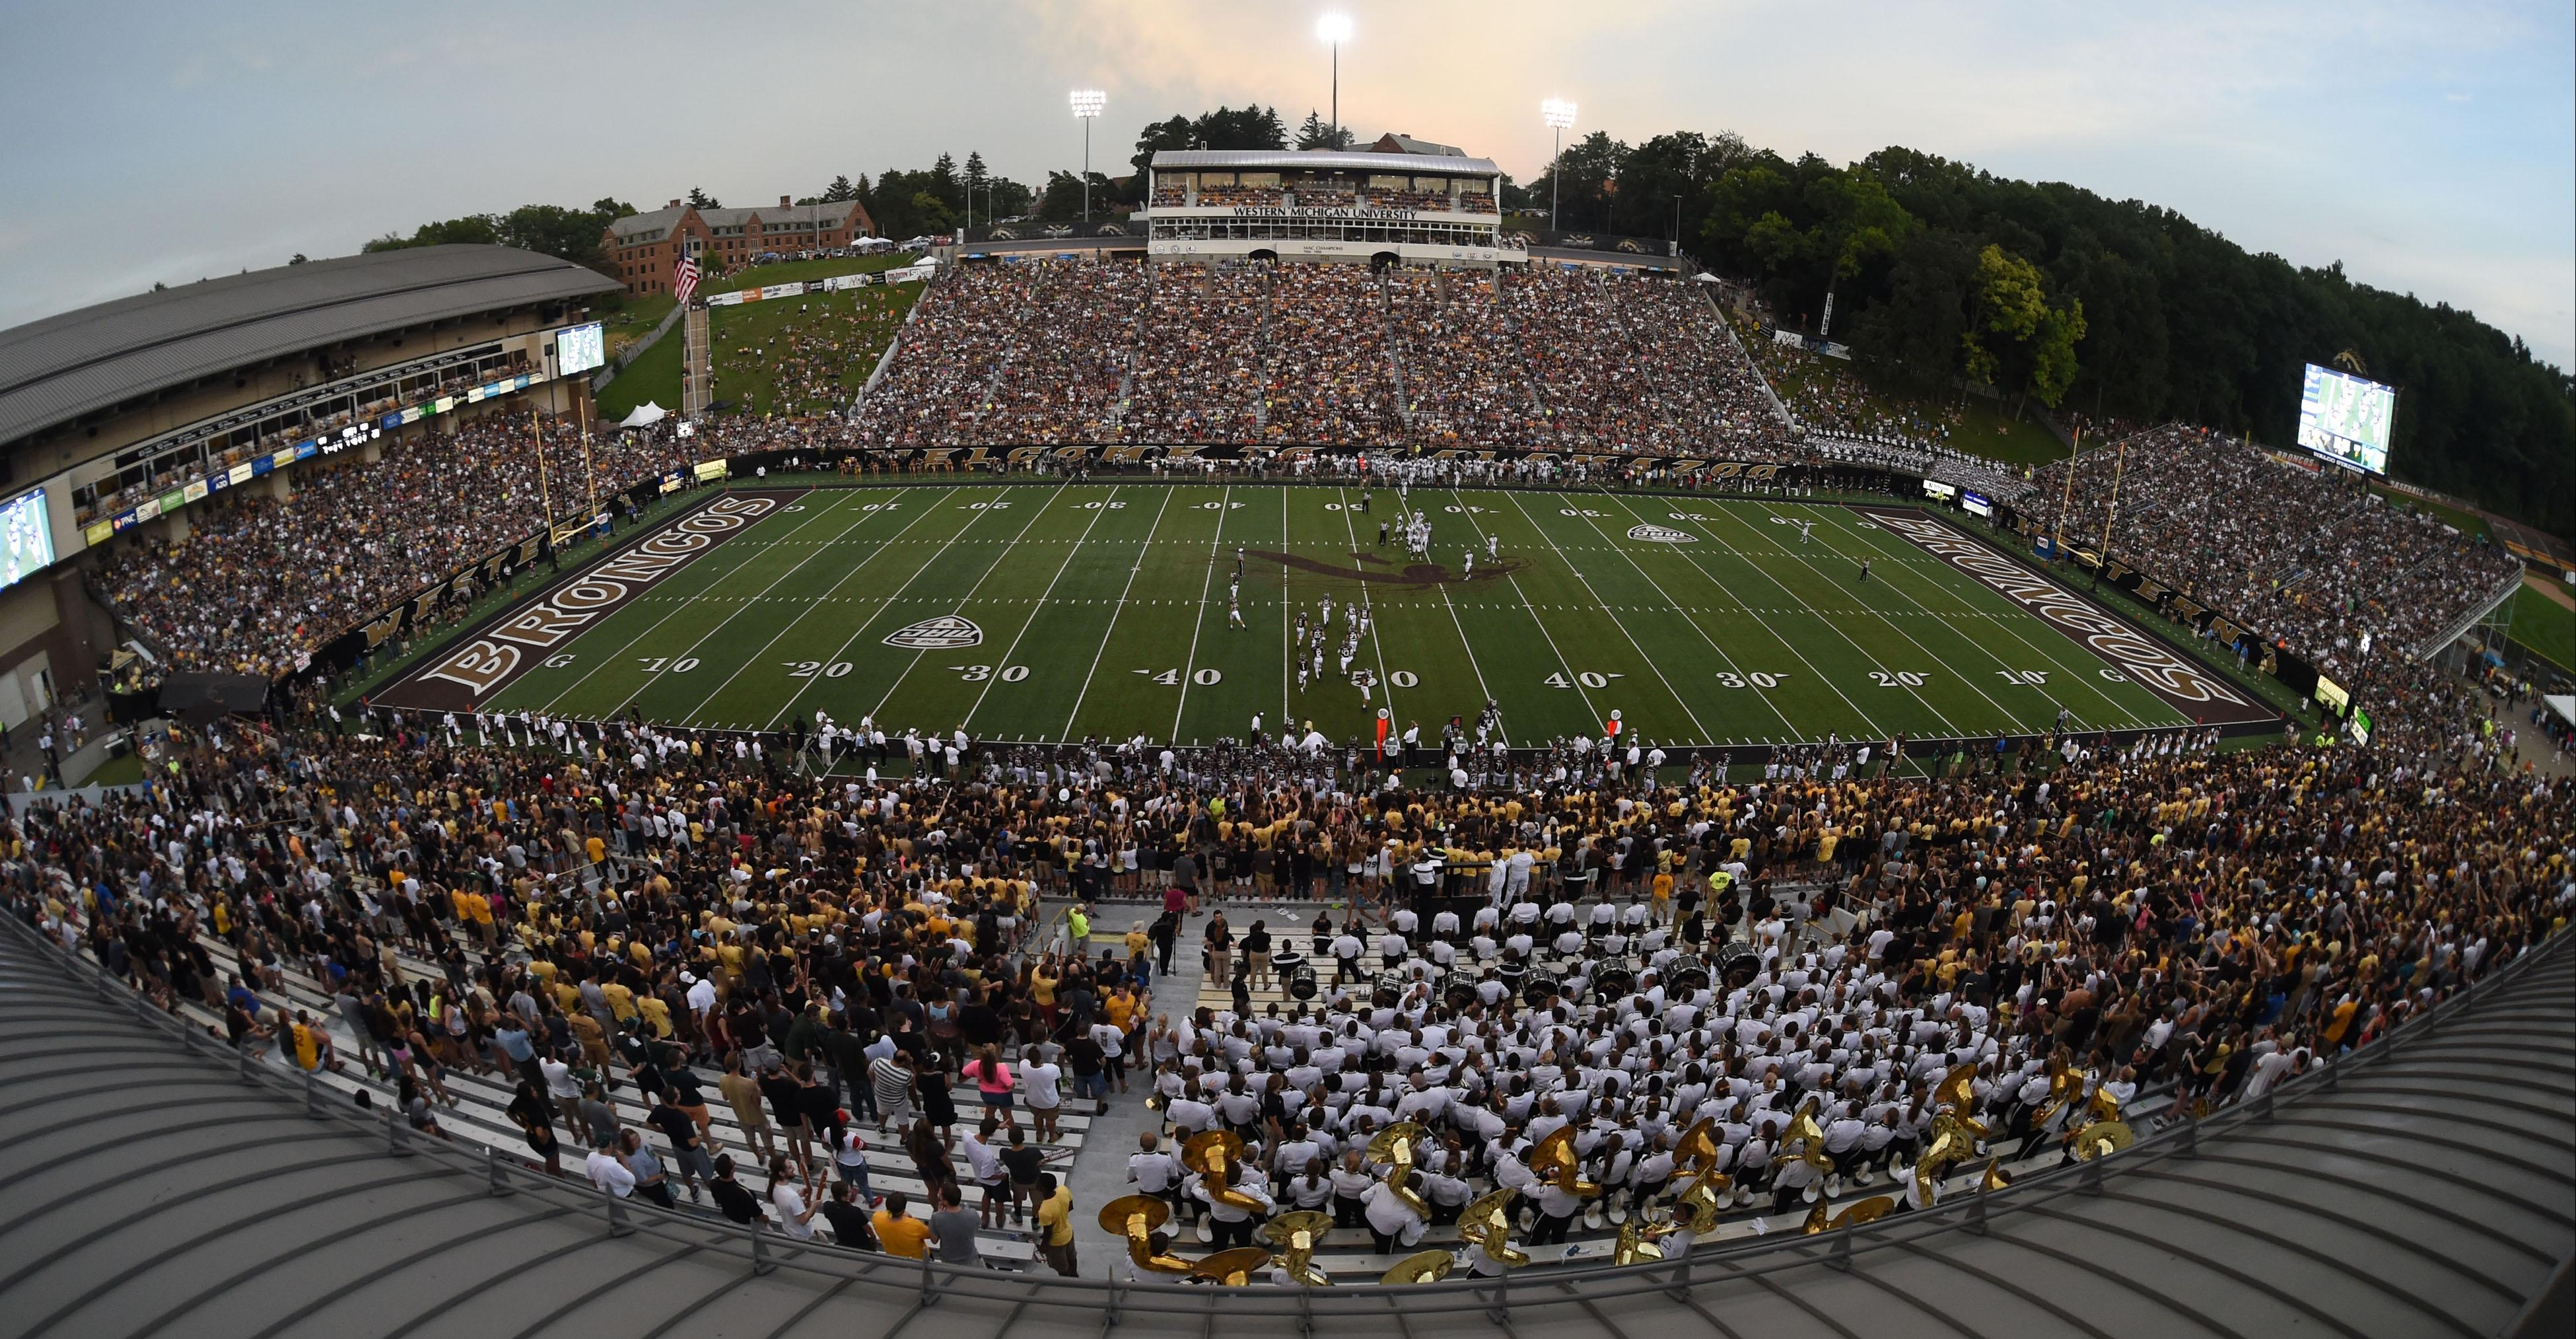 Western Michigan Broncos at Waldo Stadium